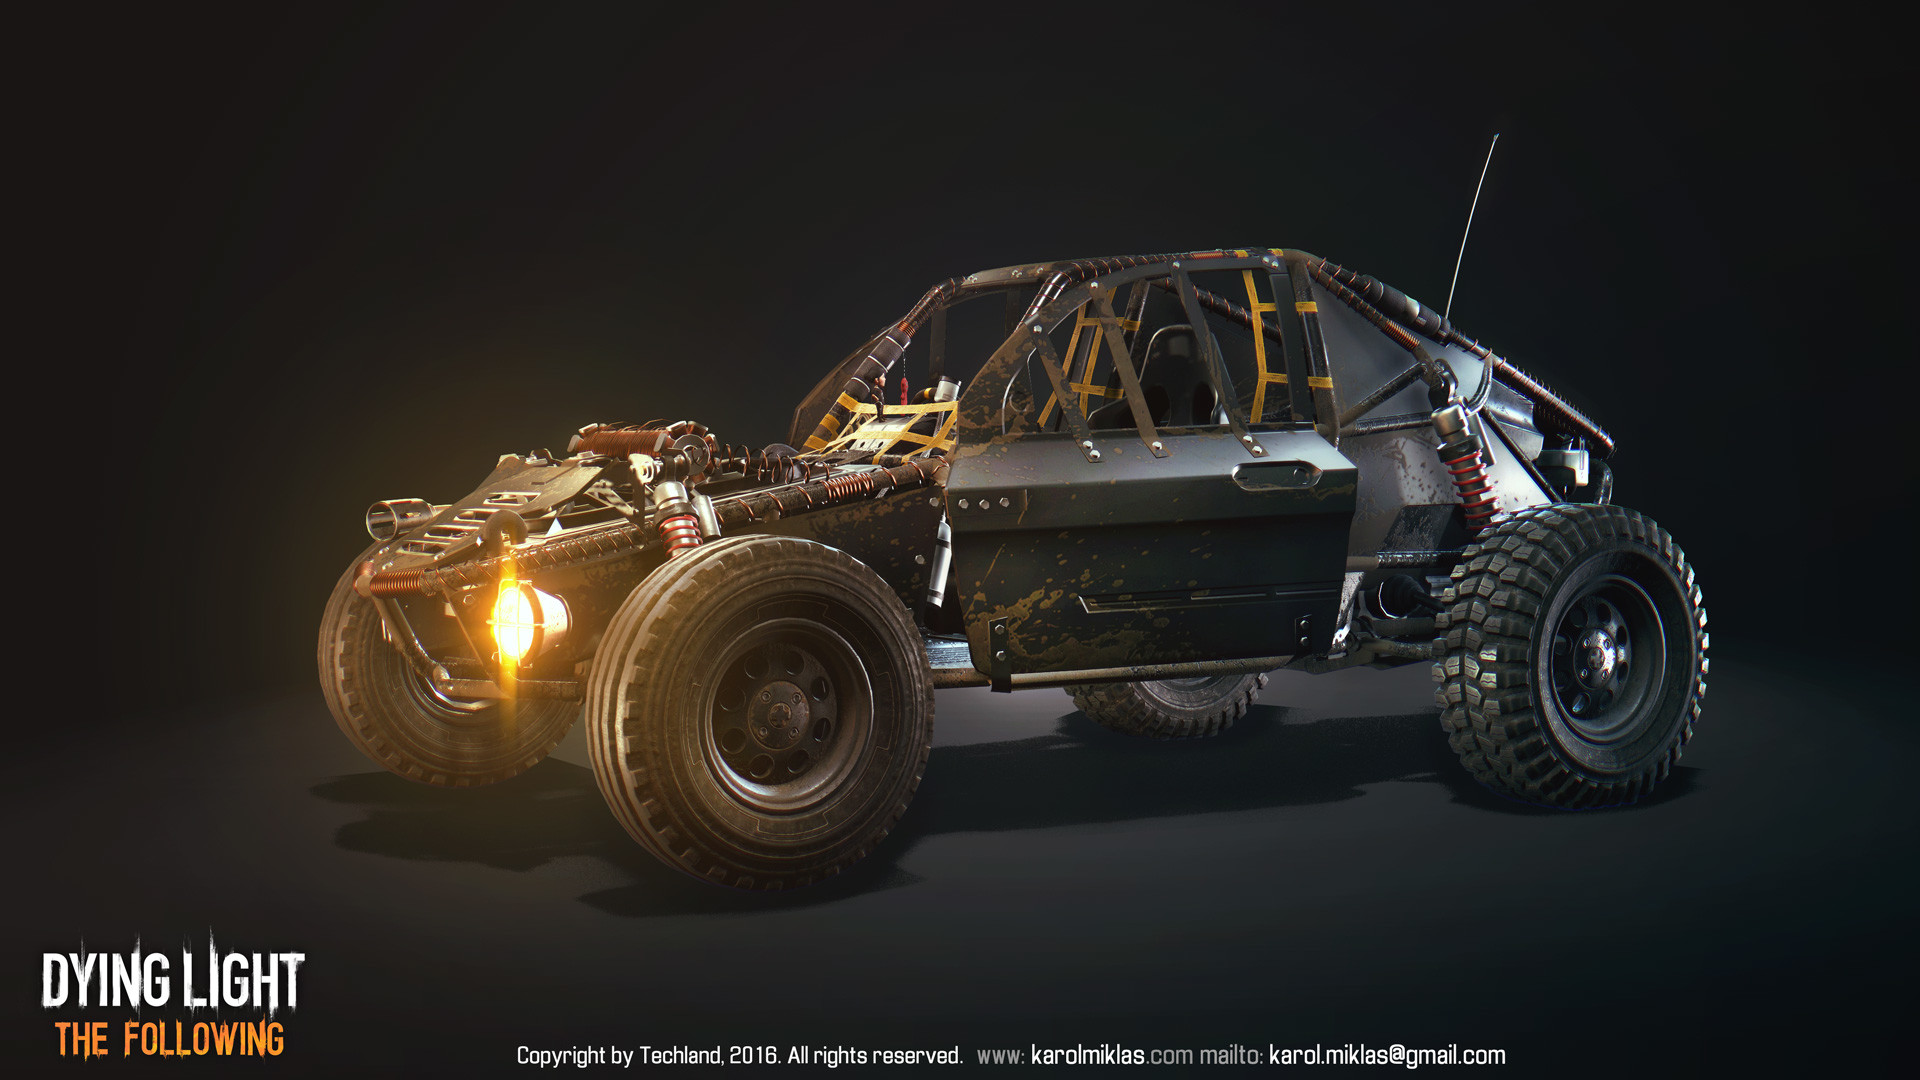 Dying Light The Following Buggy Paint Jobs